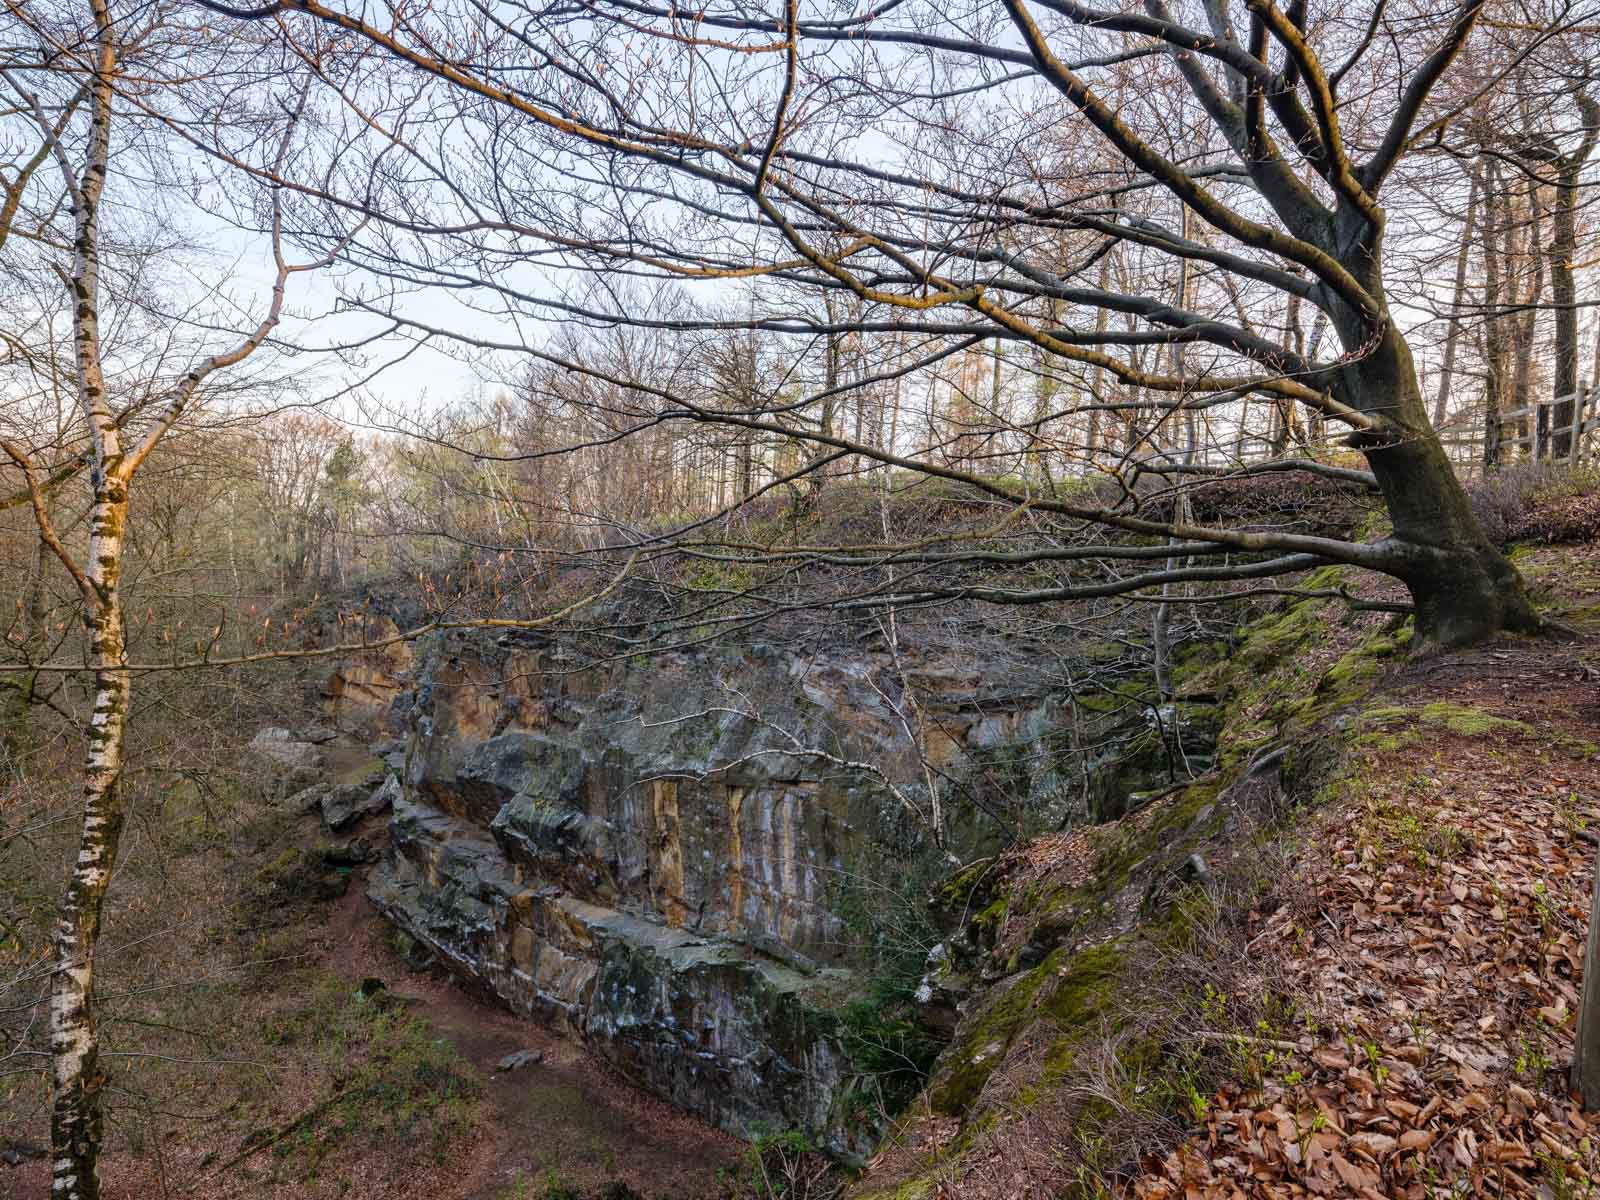 Old quarry in the Teutoburg Forest ('Halleluja' quarry) near Bielefeld (Germany).